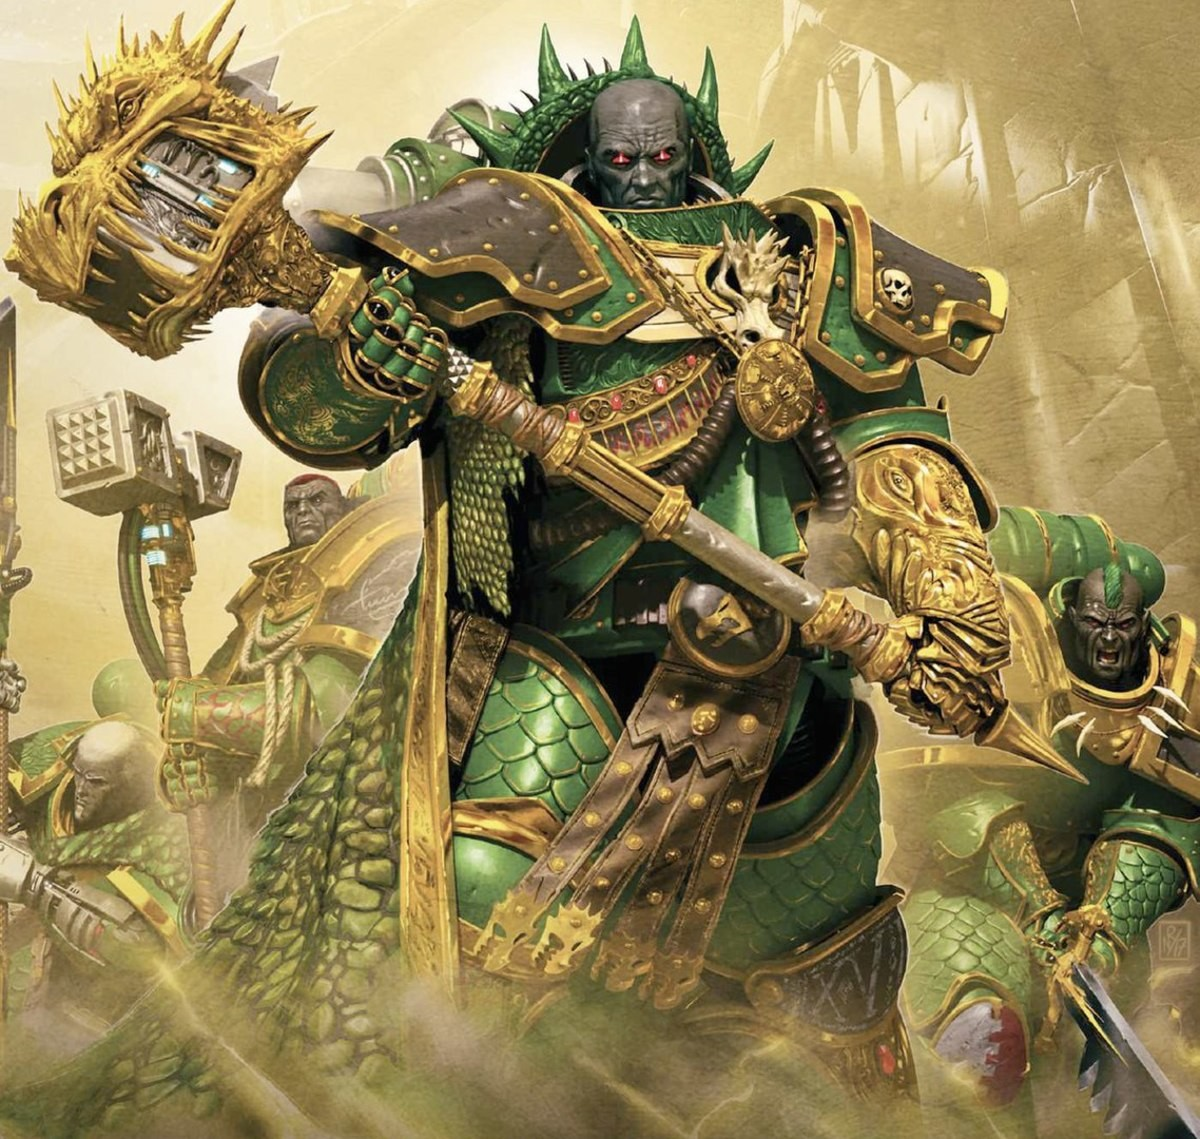 The Eighteenth Primarch. Vulkan. The Firedrake. Primarch of the Salamanders. Ridiculously strong, ridiculously big, and probably the nicest guy you'd ever meet.